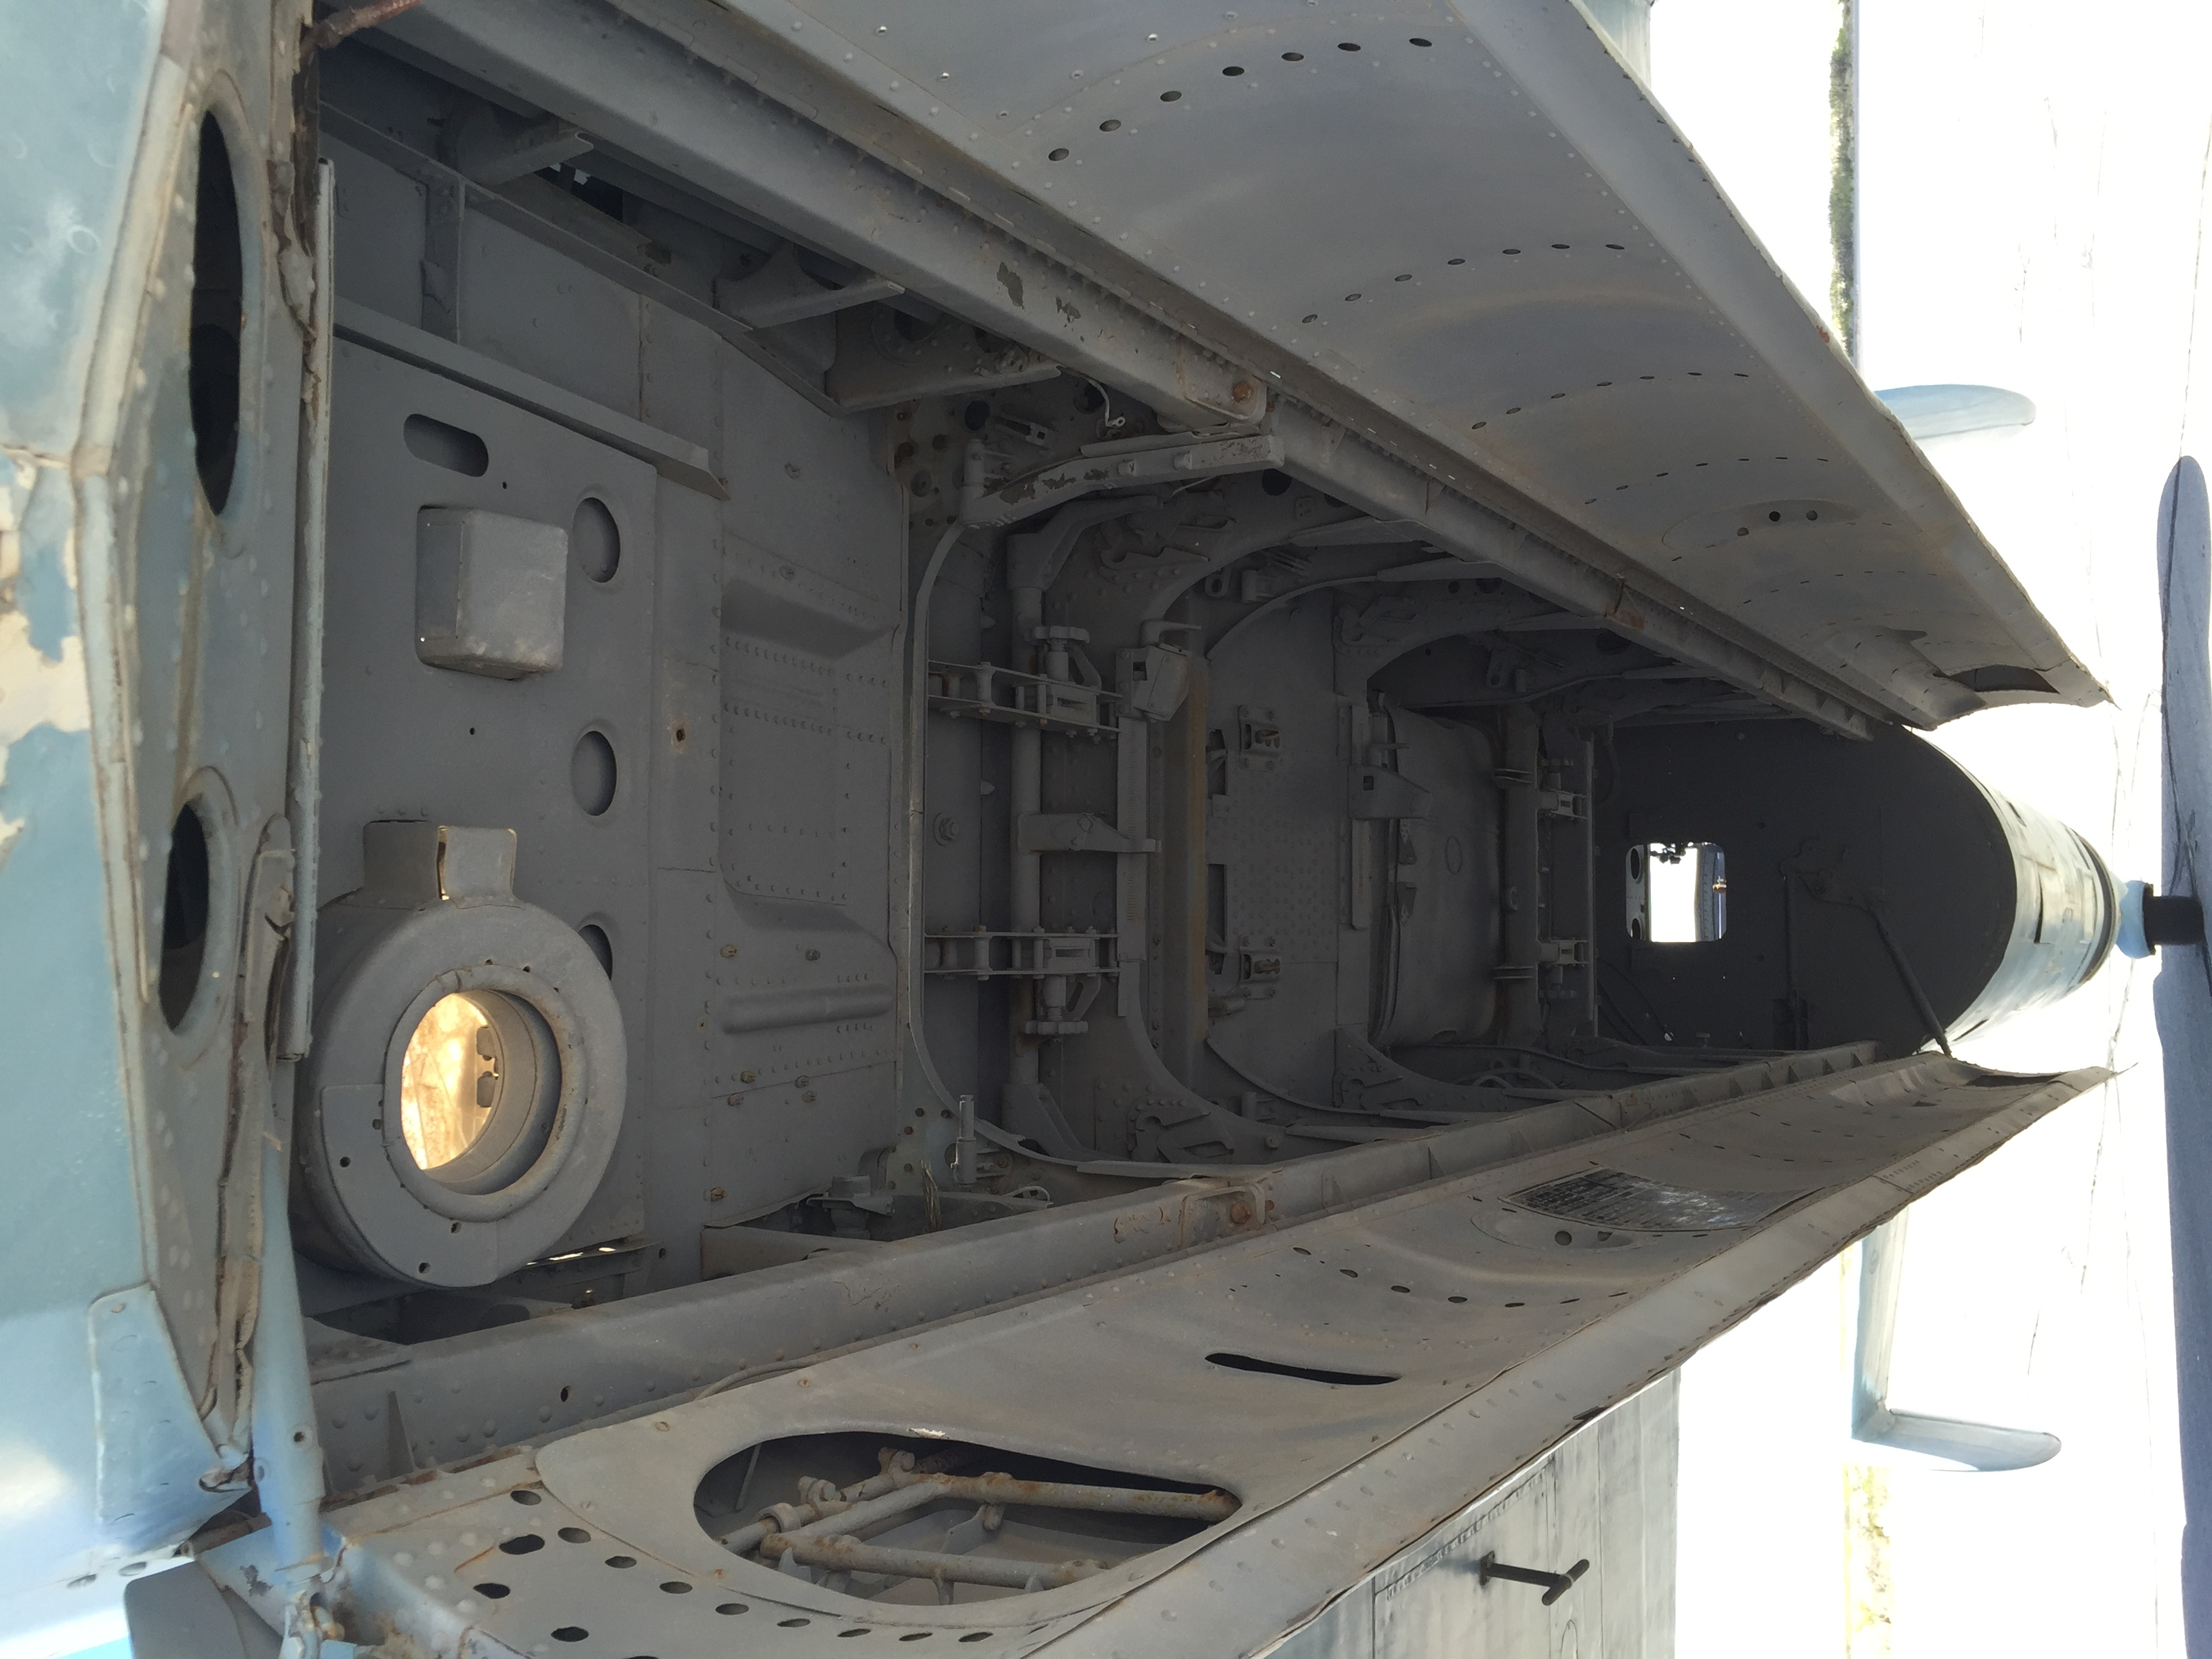 A missile chamber under an airplane.